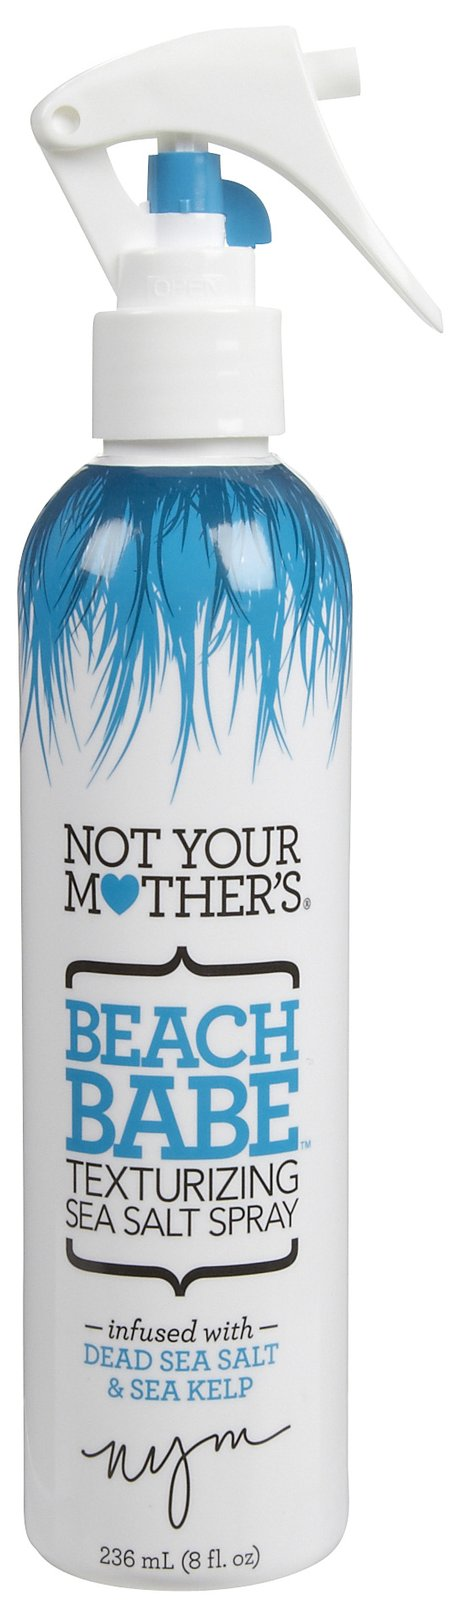 Makes your hair looks like you were at the beach for a week, smells like coconut